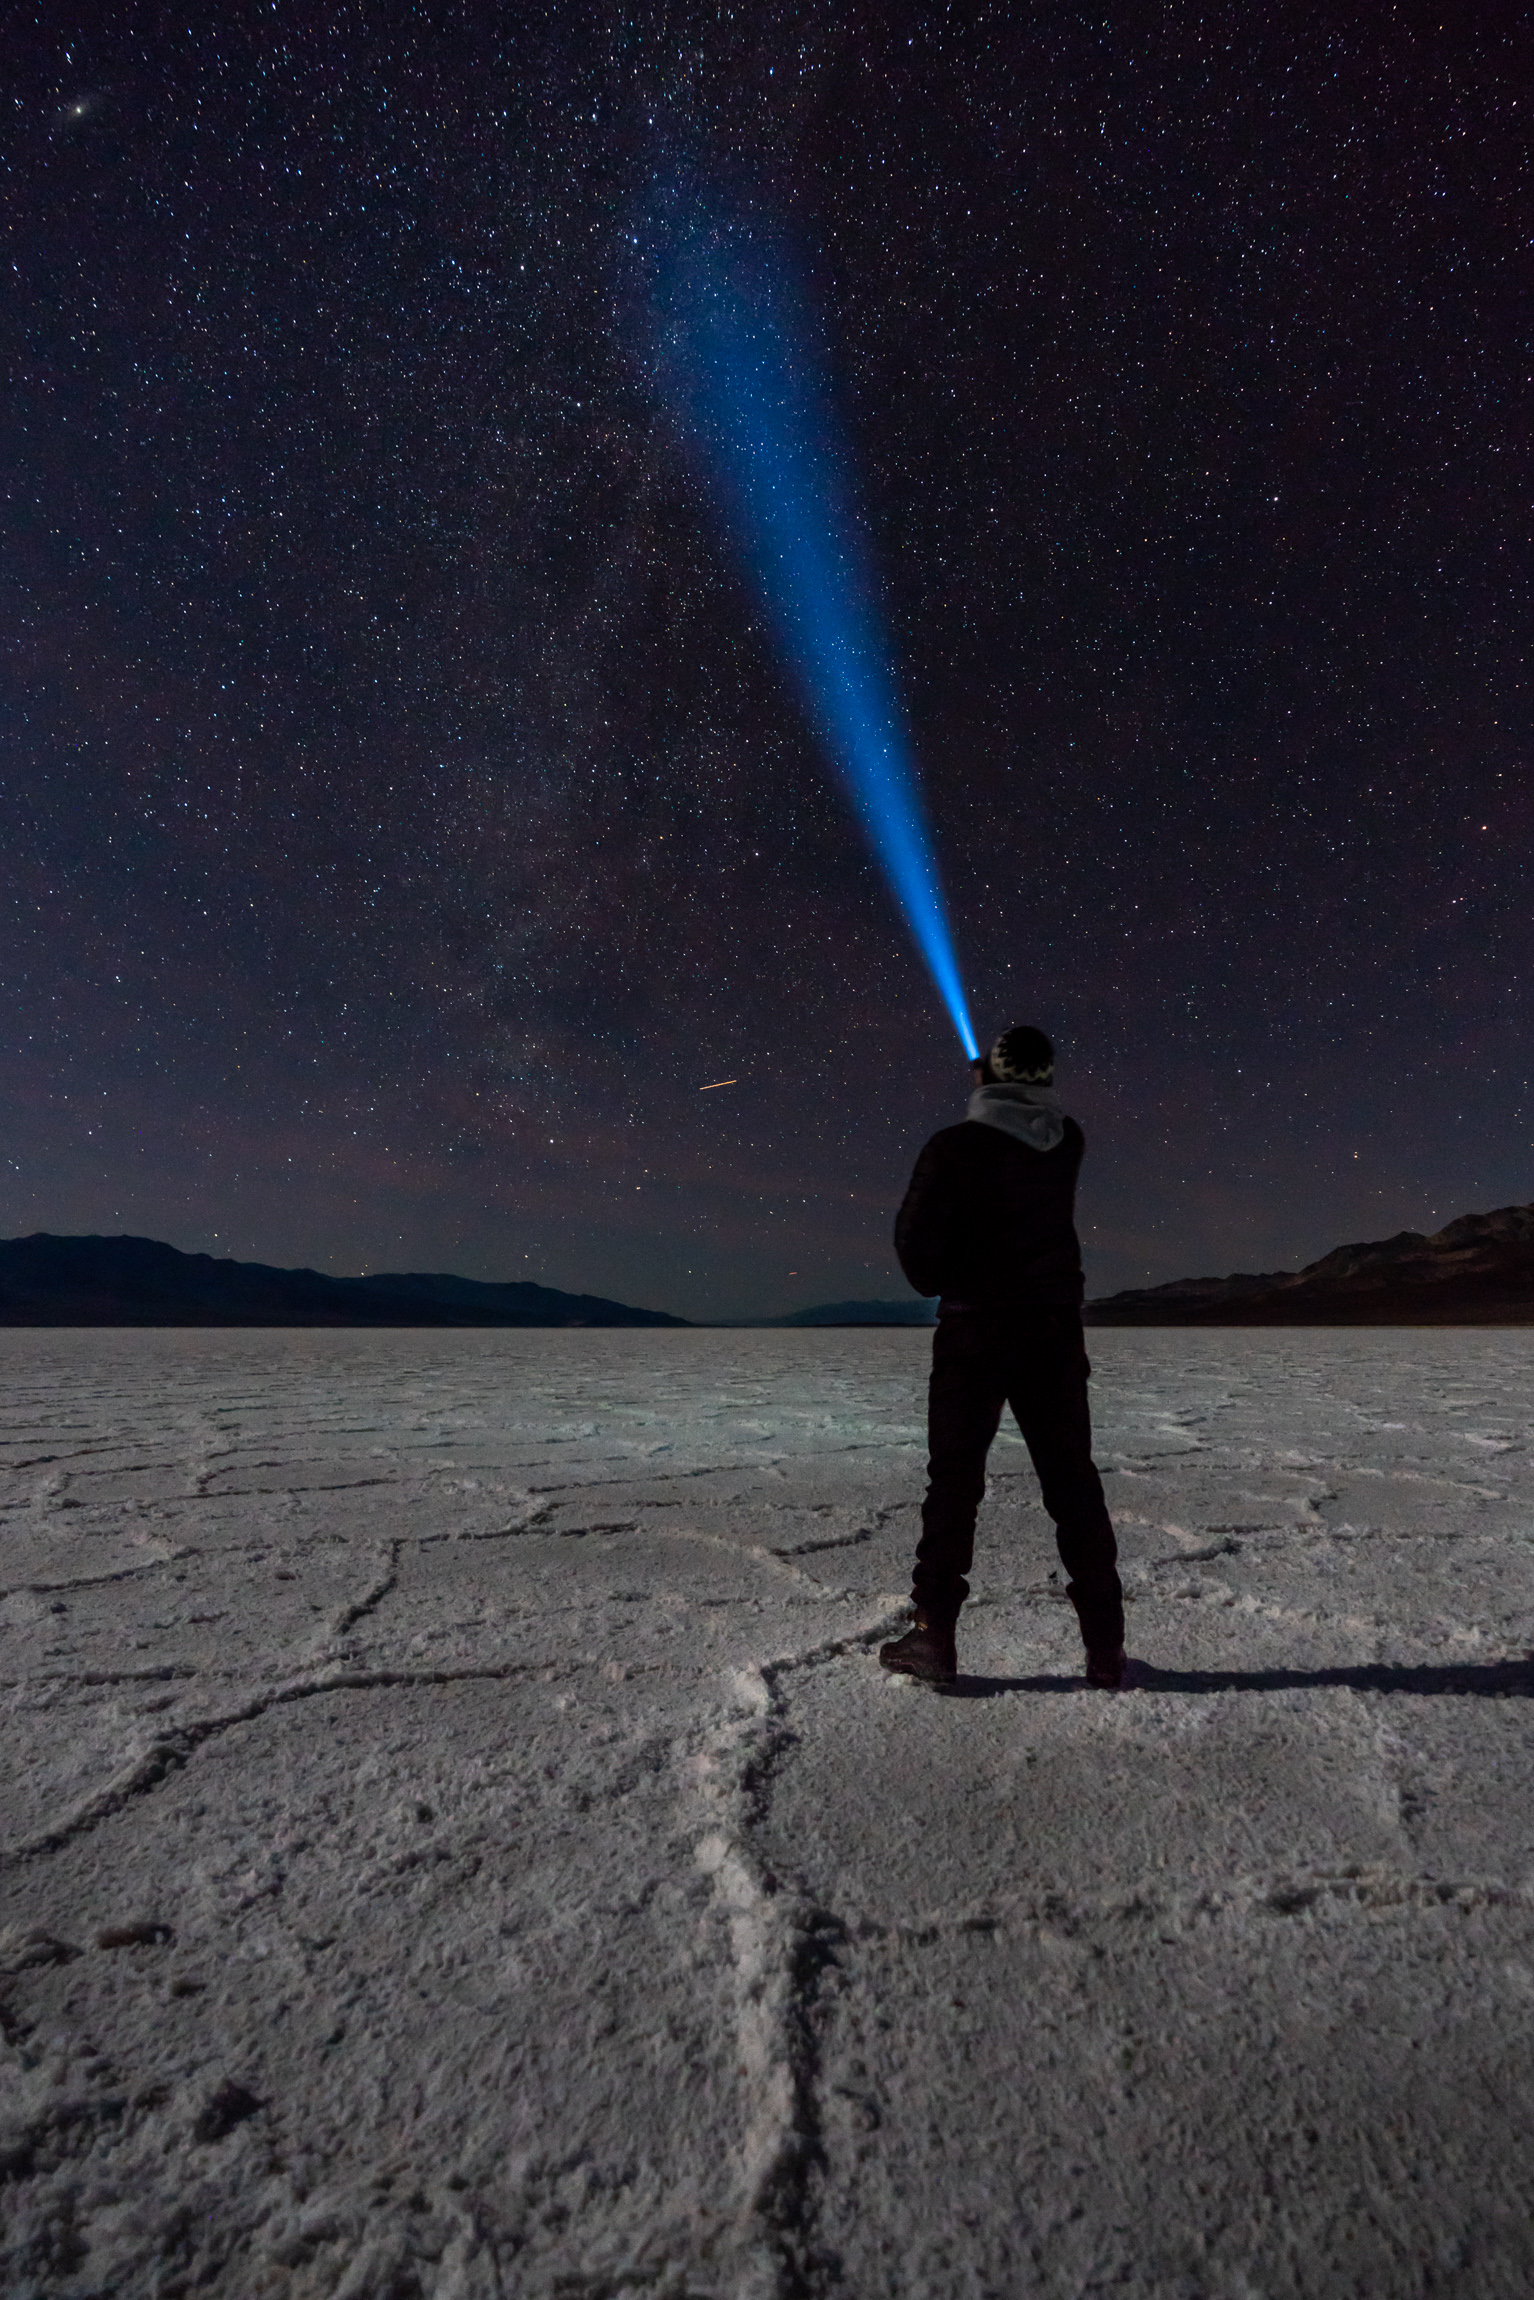 Chasing Stars on the Badwater Basin